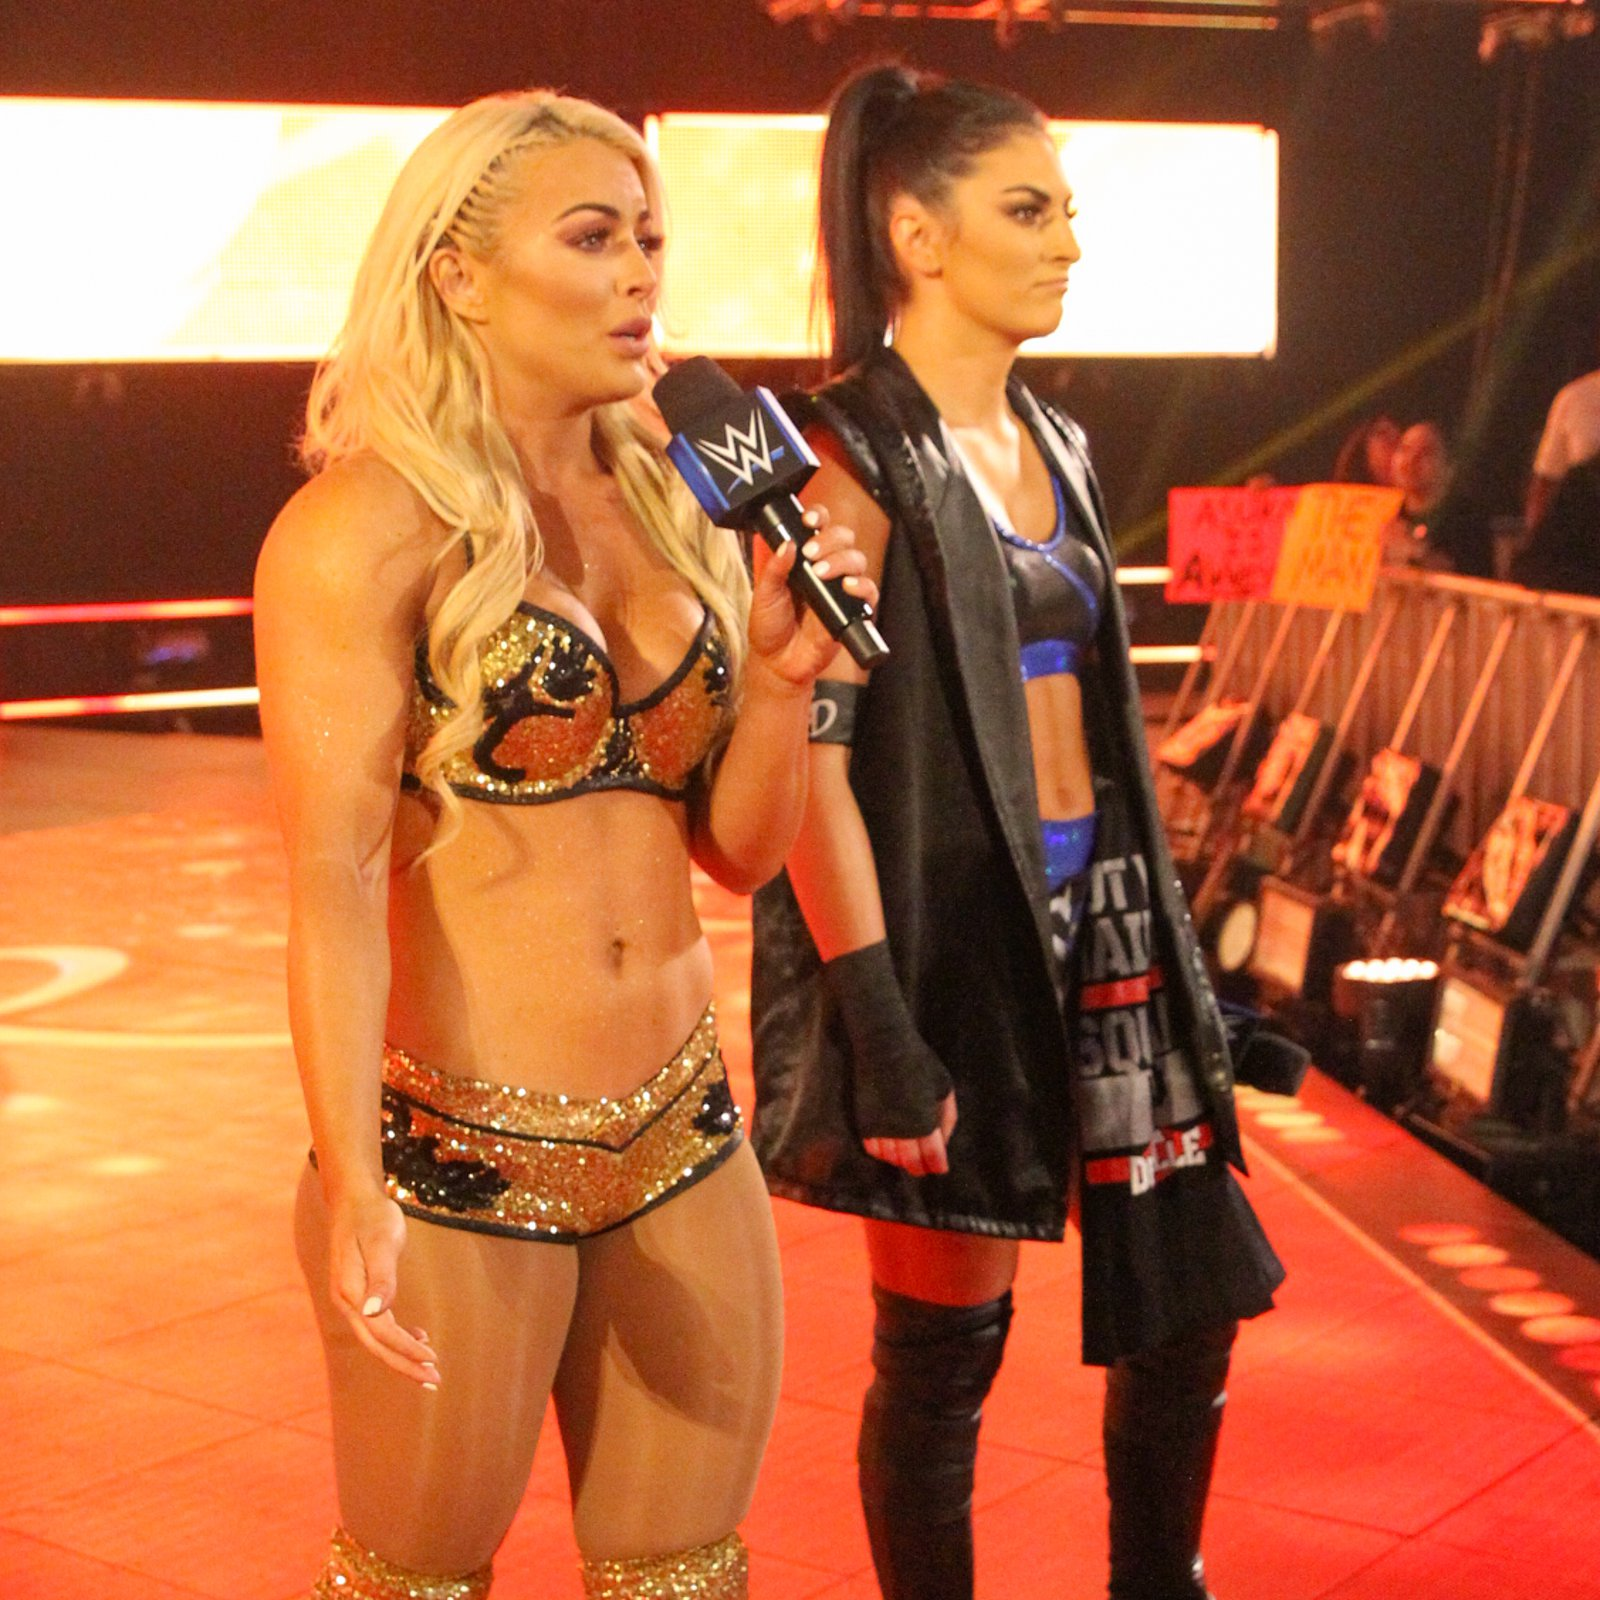 Suddenly, Mandy Rose and Sonya Deville hit the scene.